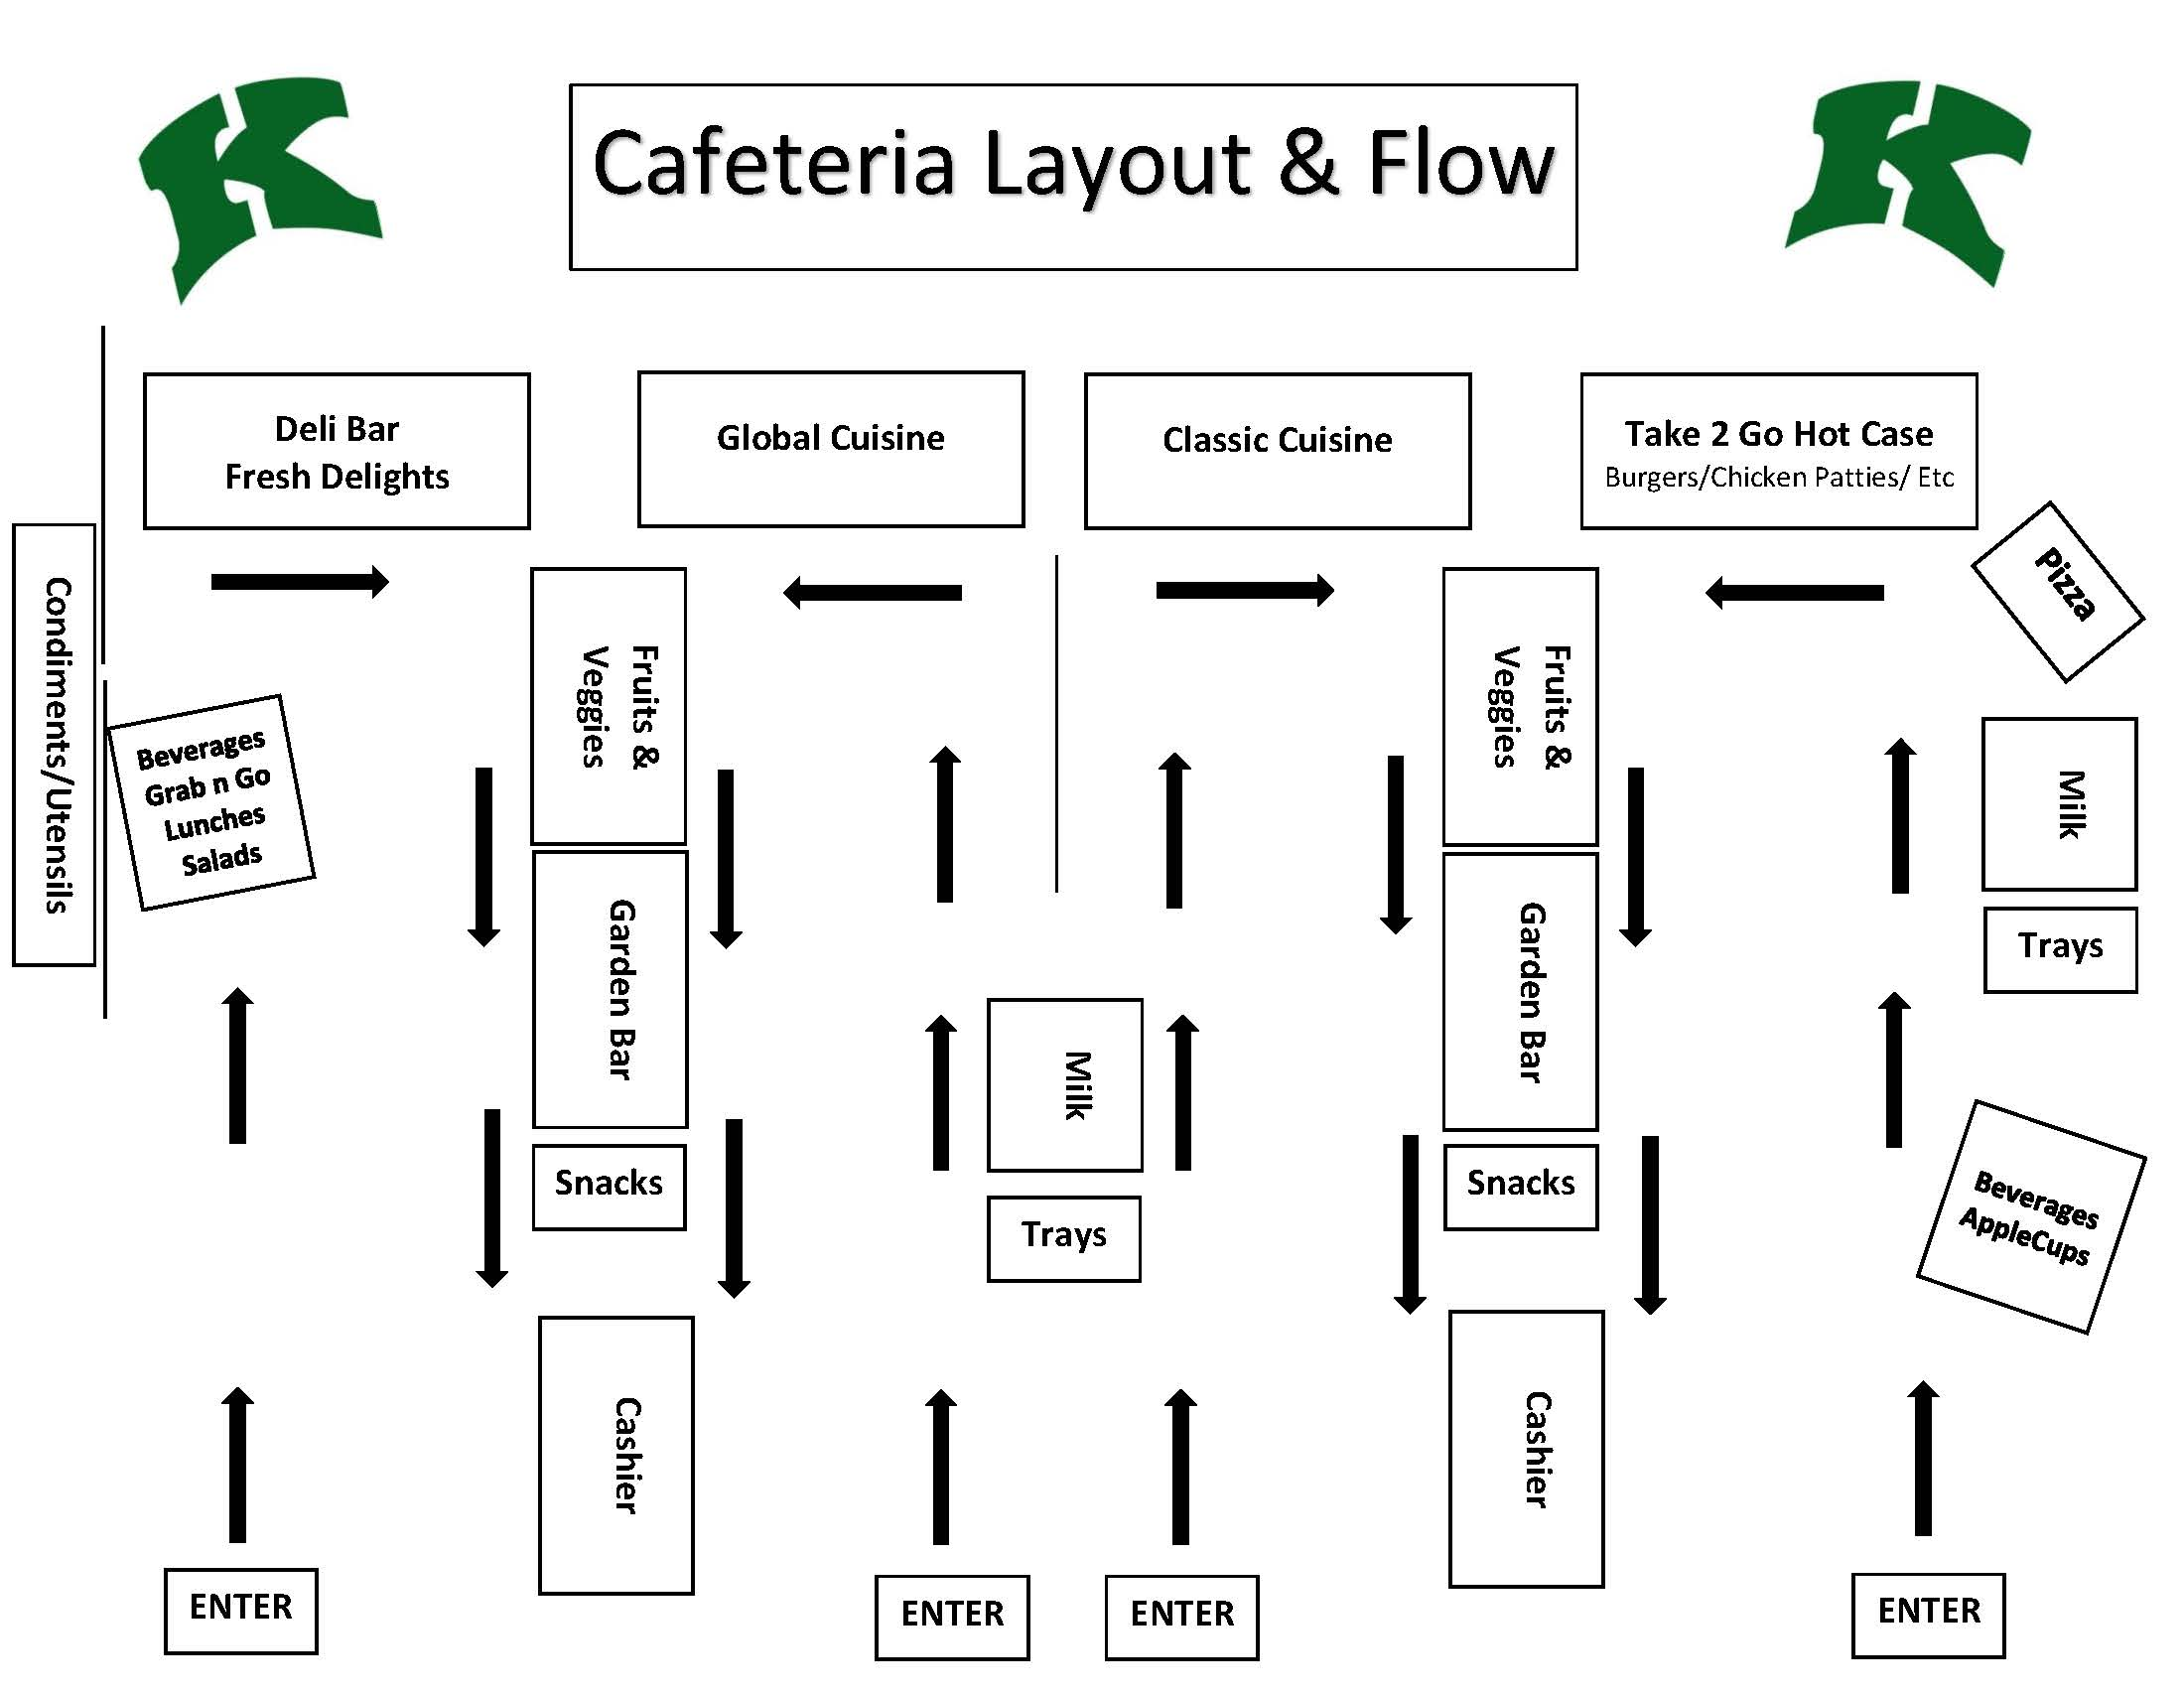 2017/18 KHS Cafeteria Layout